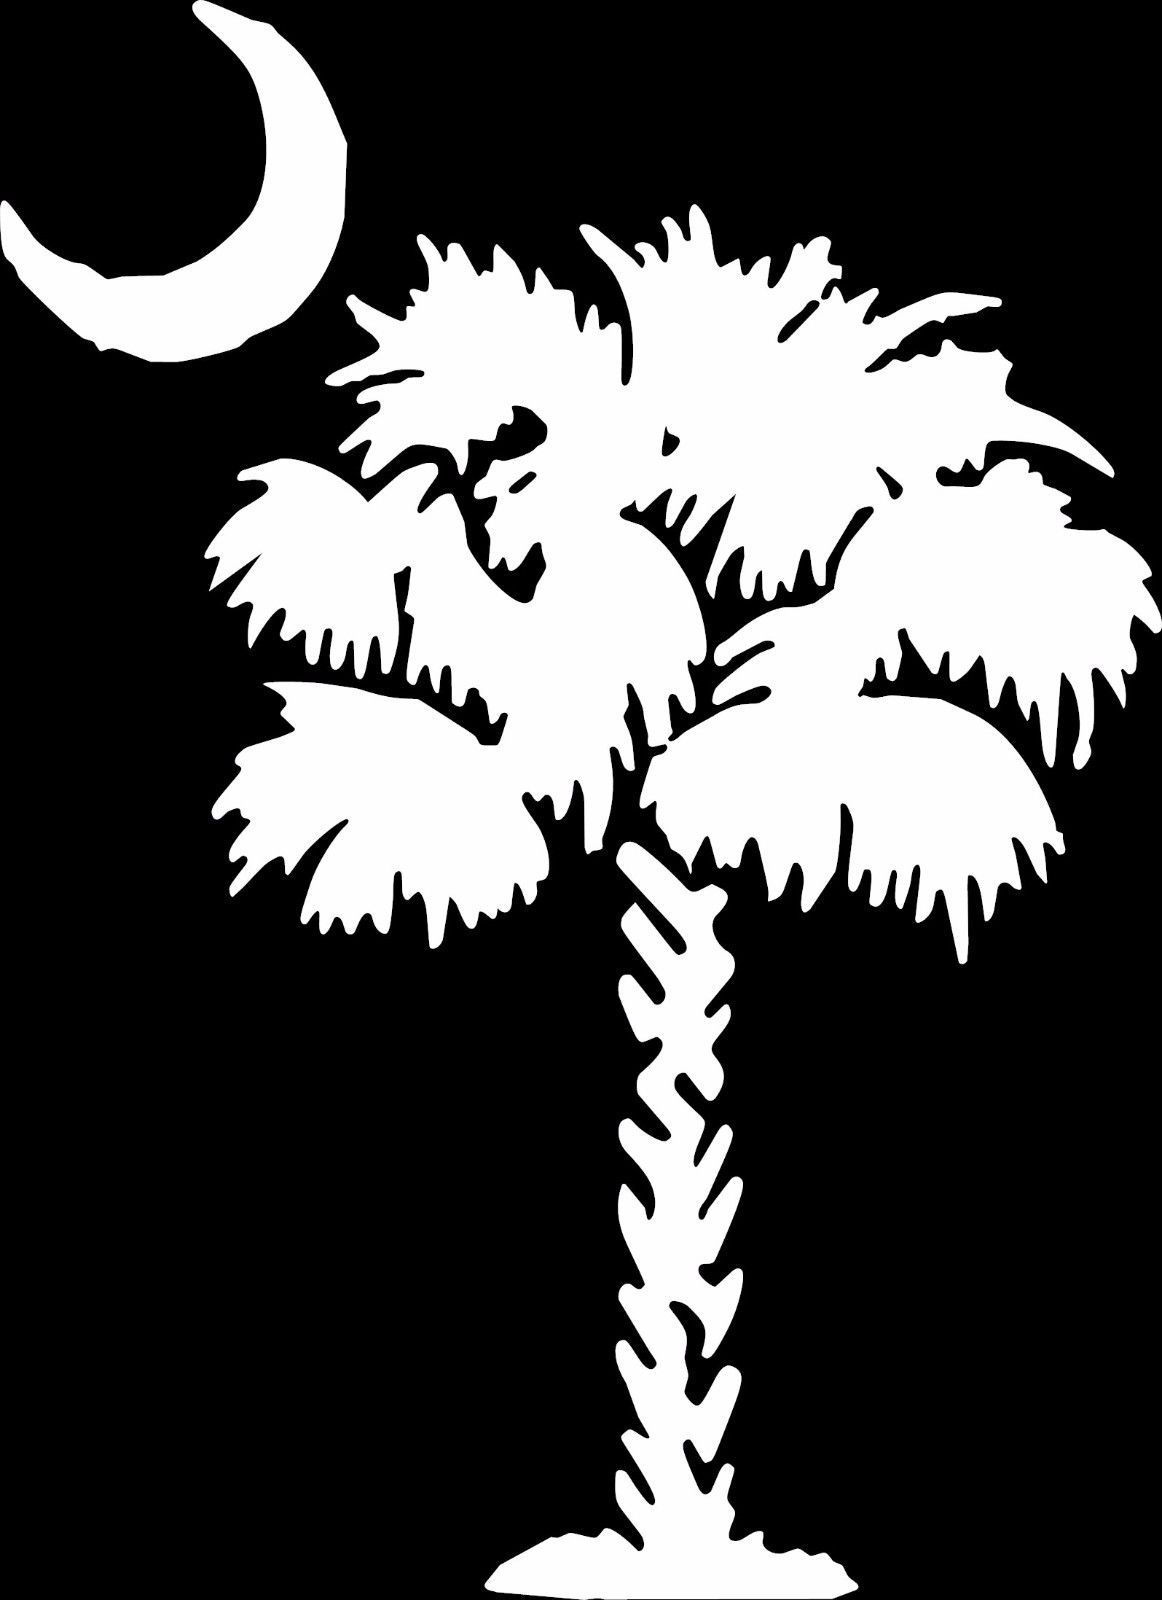 Pin By D Rudy On South Carolina Palmetto Tree Tree Decals Outdoor Wall Art [ 1600 x 1162 Pixel ]